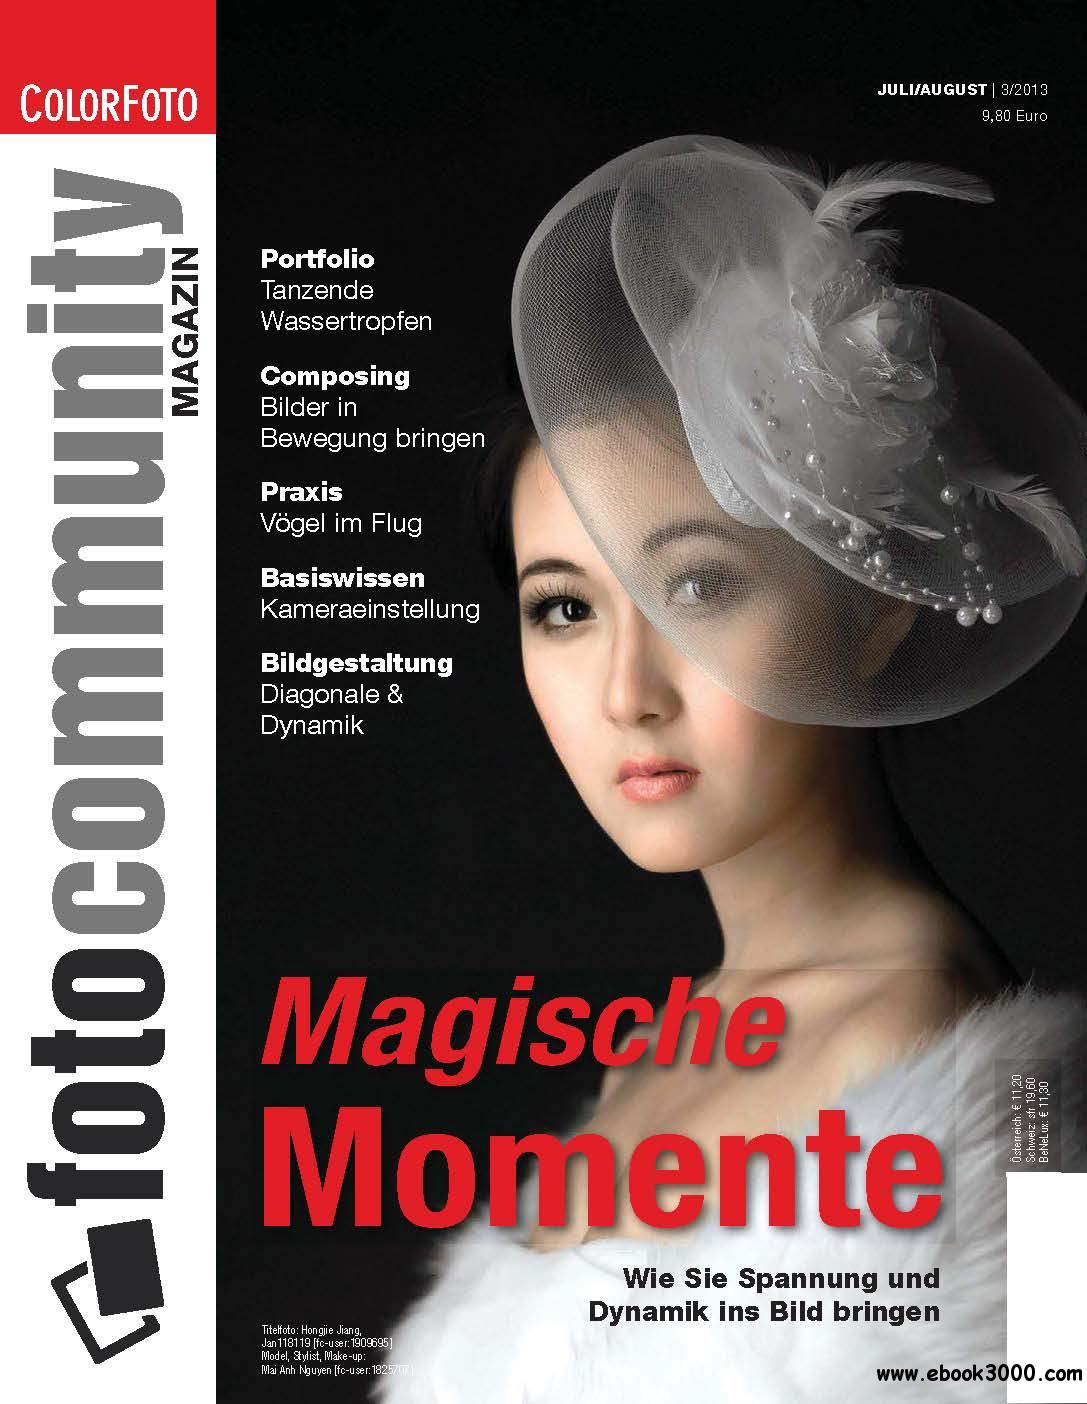 fotocommunity Magazin Juli/August 03/2013 free download